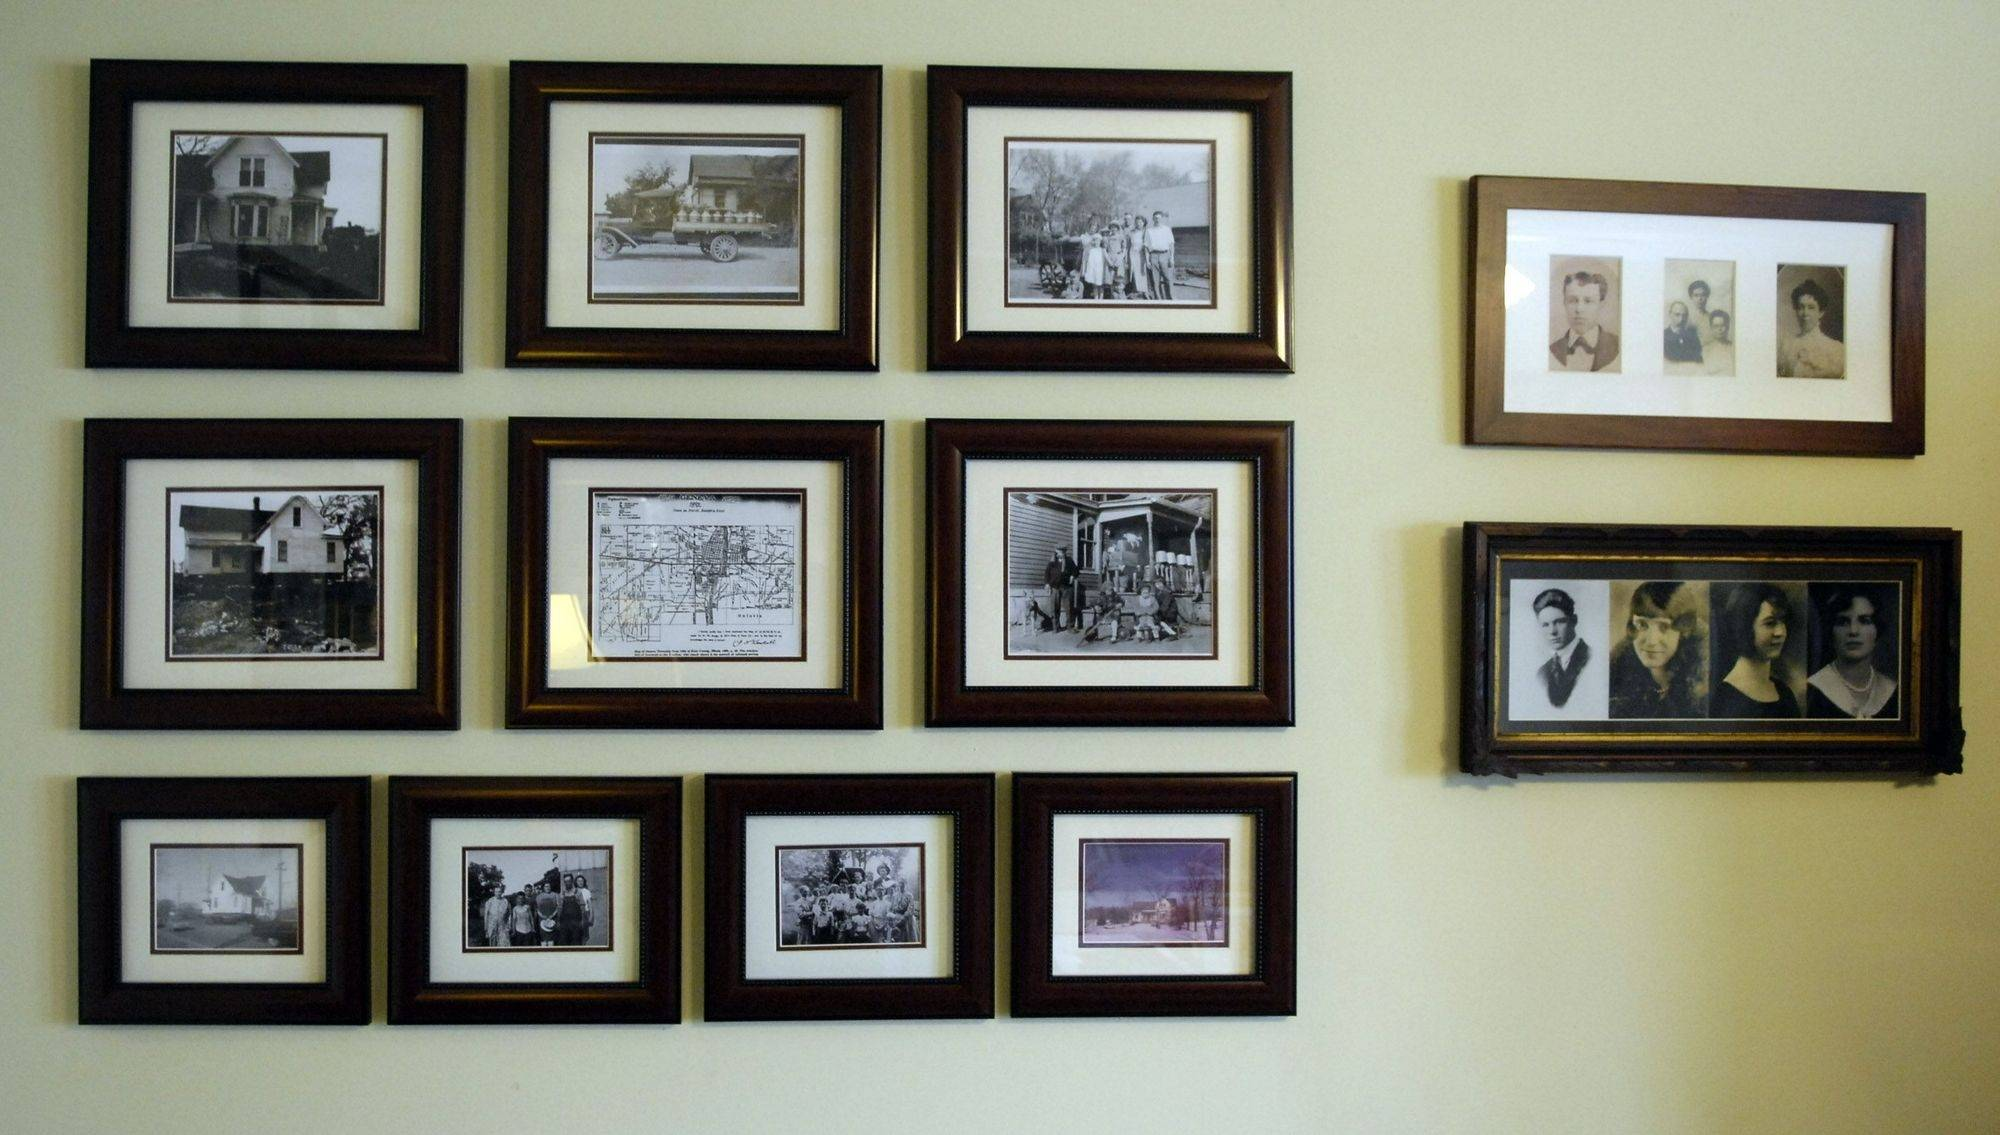 Adam Gibbons is a history teacher and genealogy buff and has filled his historic home with pictures from its past. The